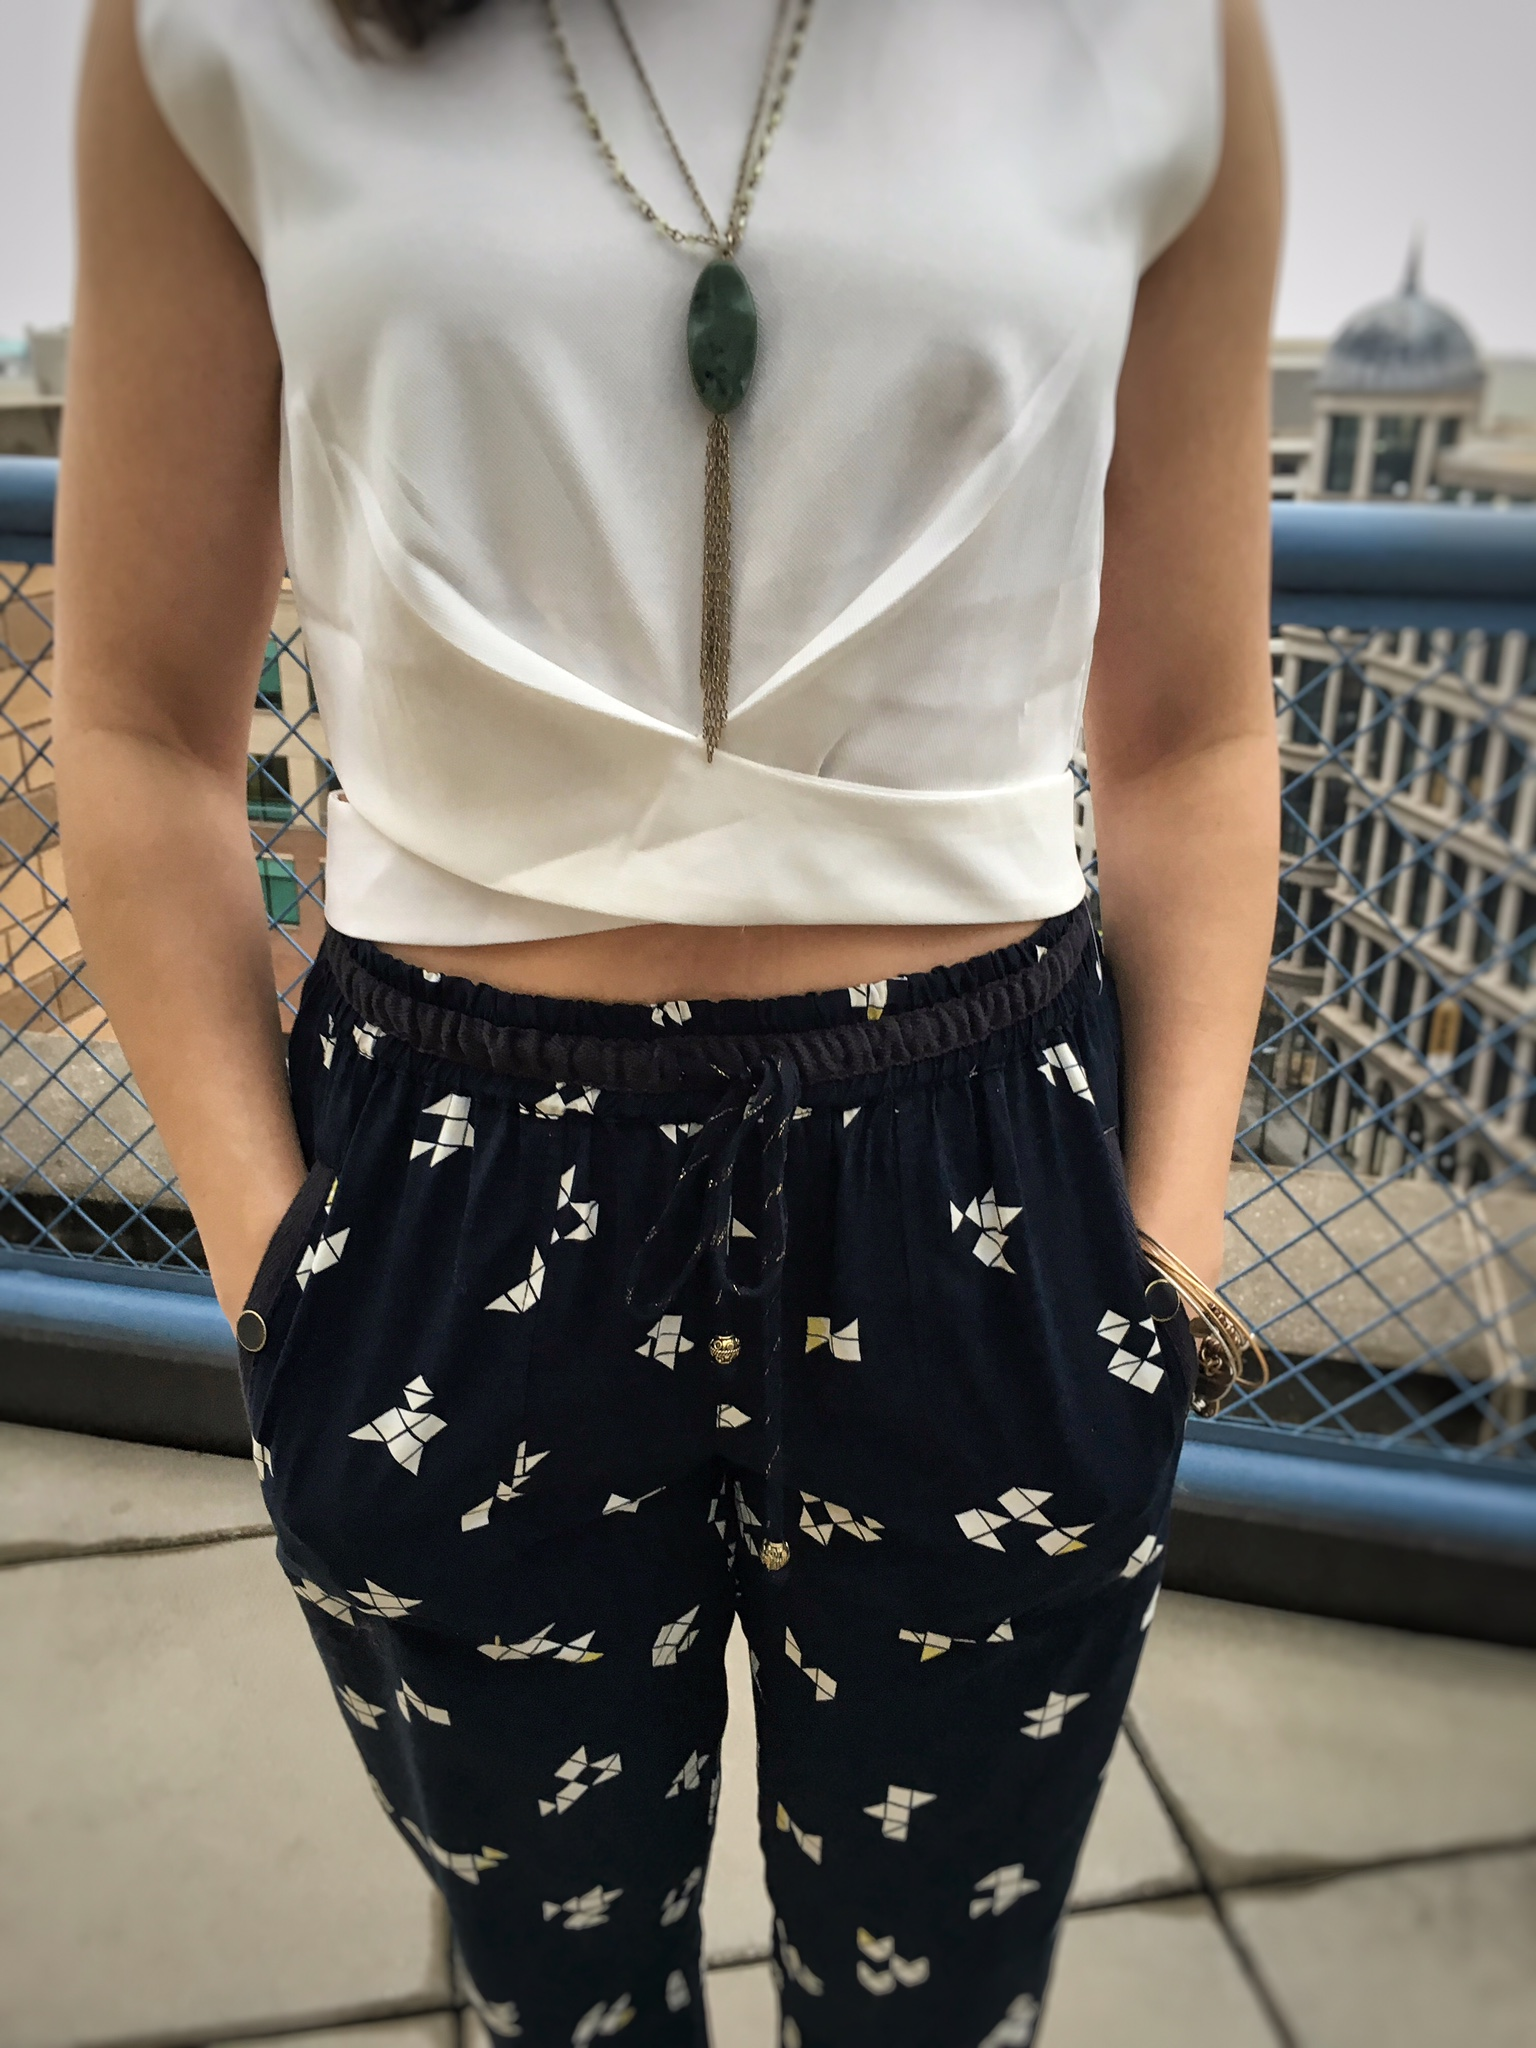 glass of glam - printed pants